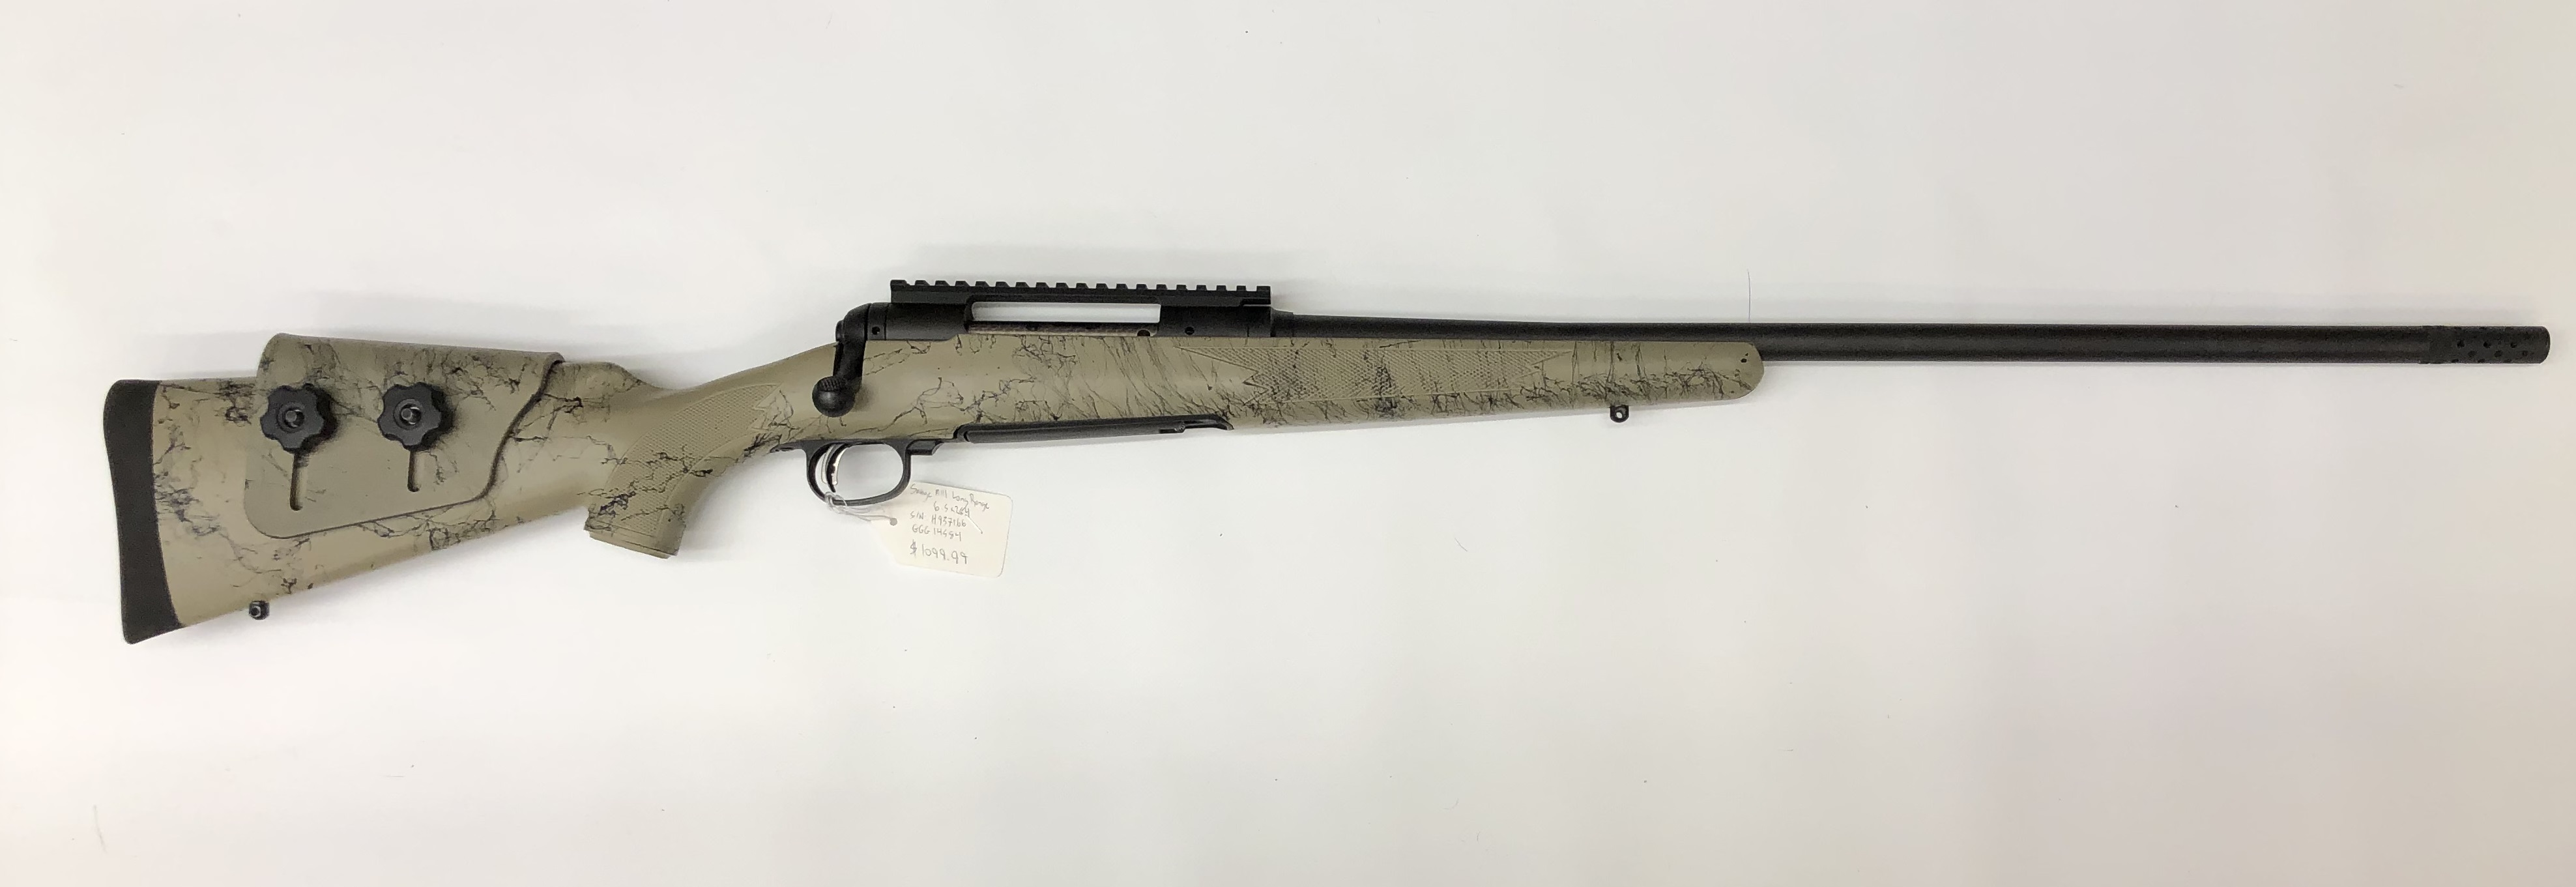 SAVAGE 111 6.5 X 284 BOLT ACTION RIFLE GGG14584